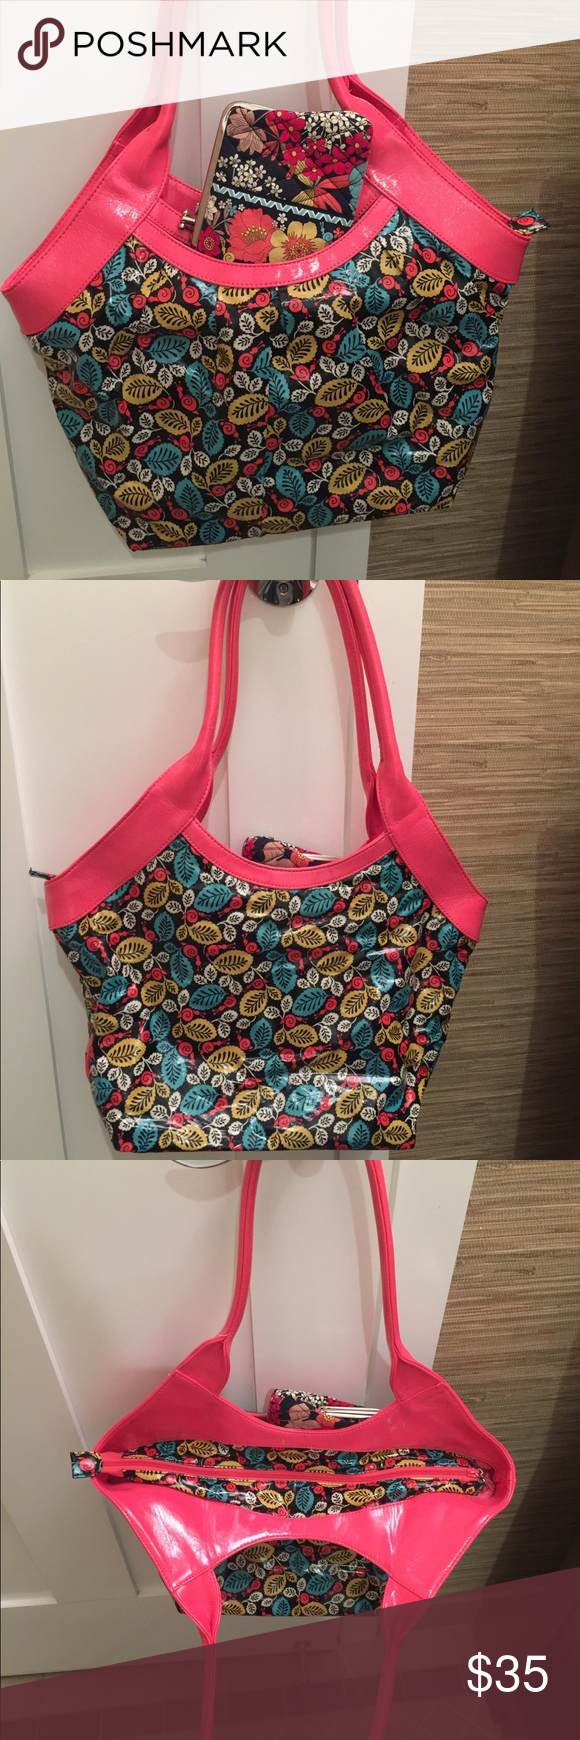 Vera Bradley Happy Snails Tote Tote is in good condition.  Easy to clean.  Comes with matching wallet.  Handles are coral colored but in the photo they look pink. Vera Bradley Bags Totes